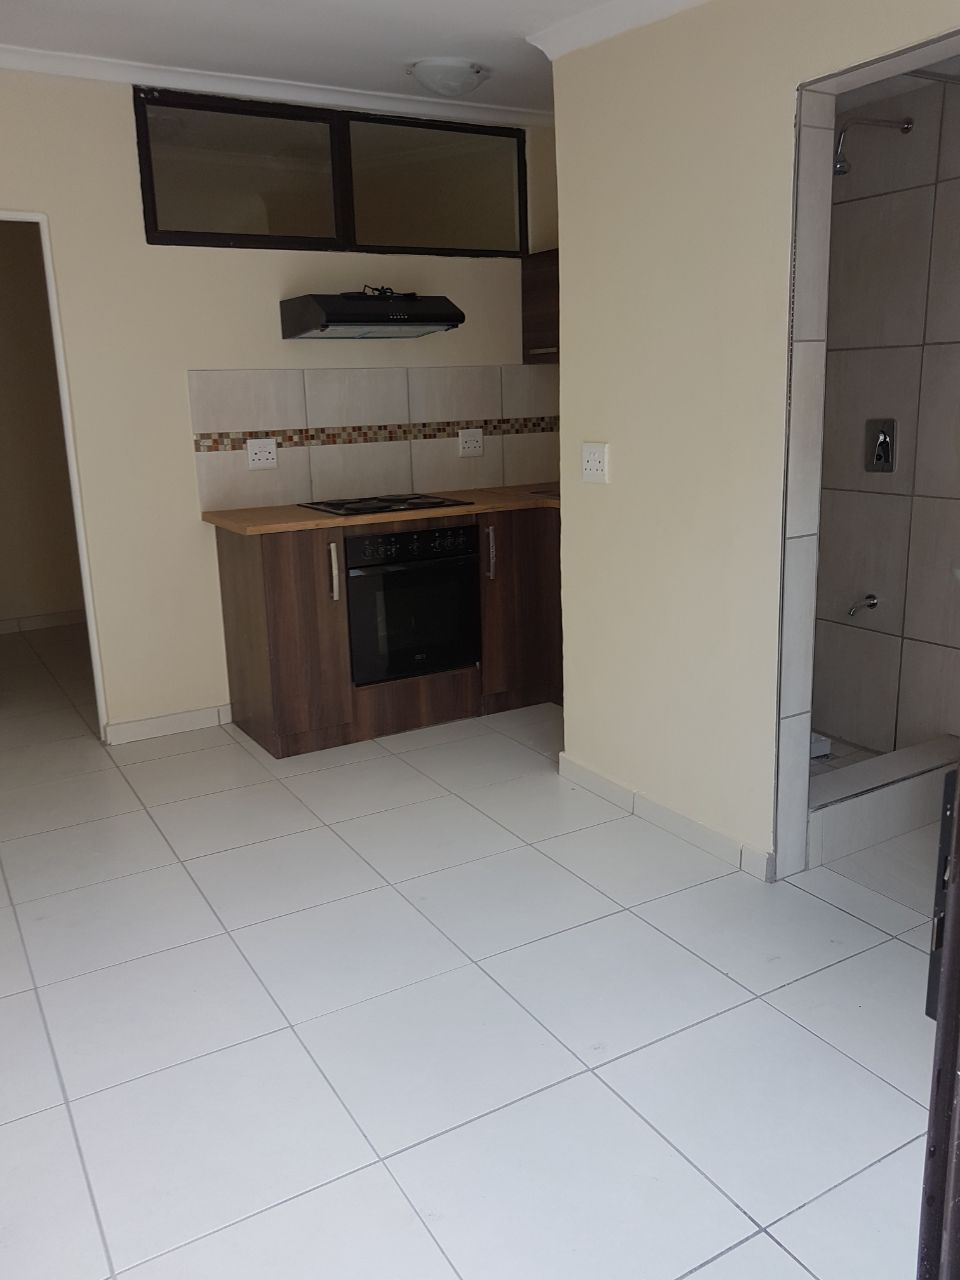 Newly renovated units to rent in Kromboom (Cluster Home)